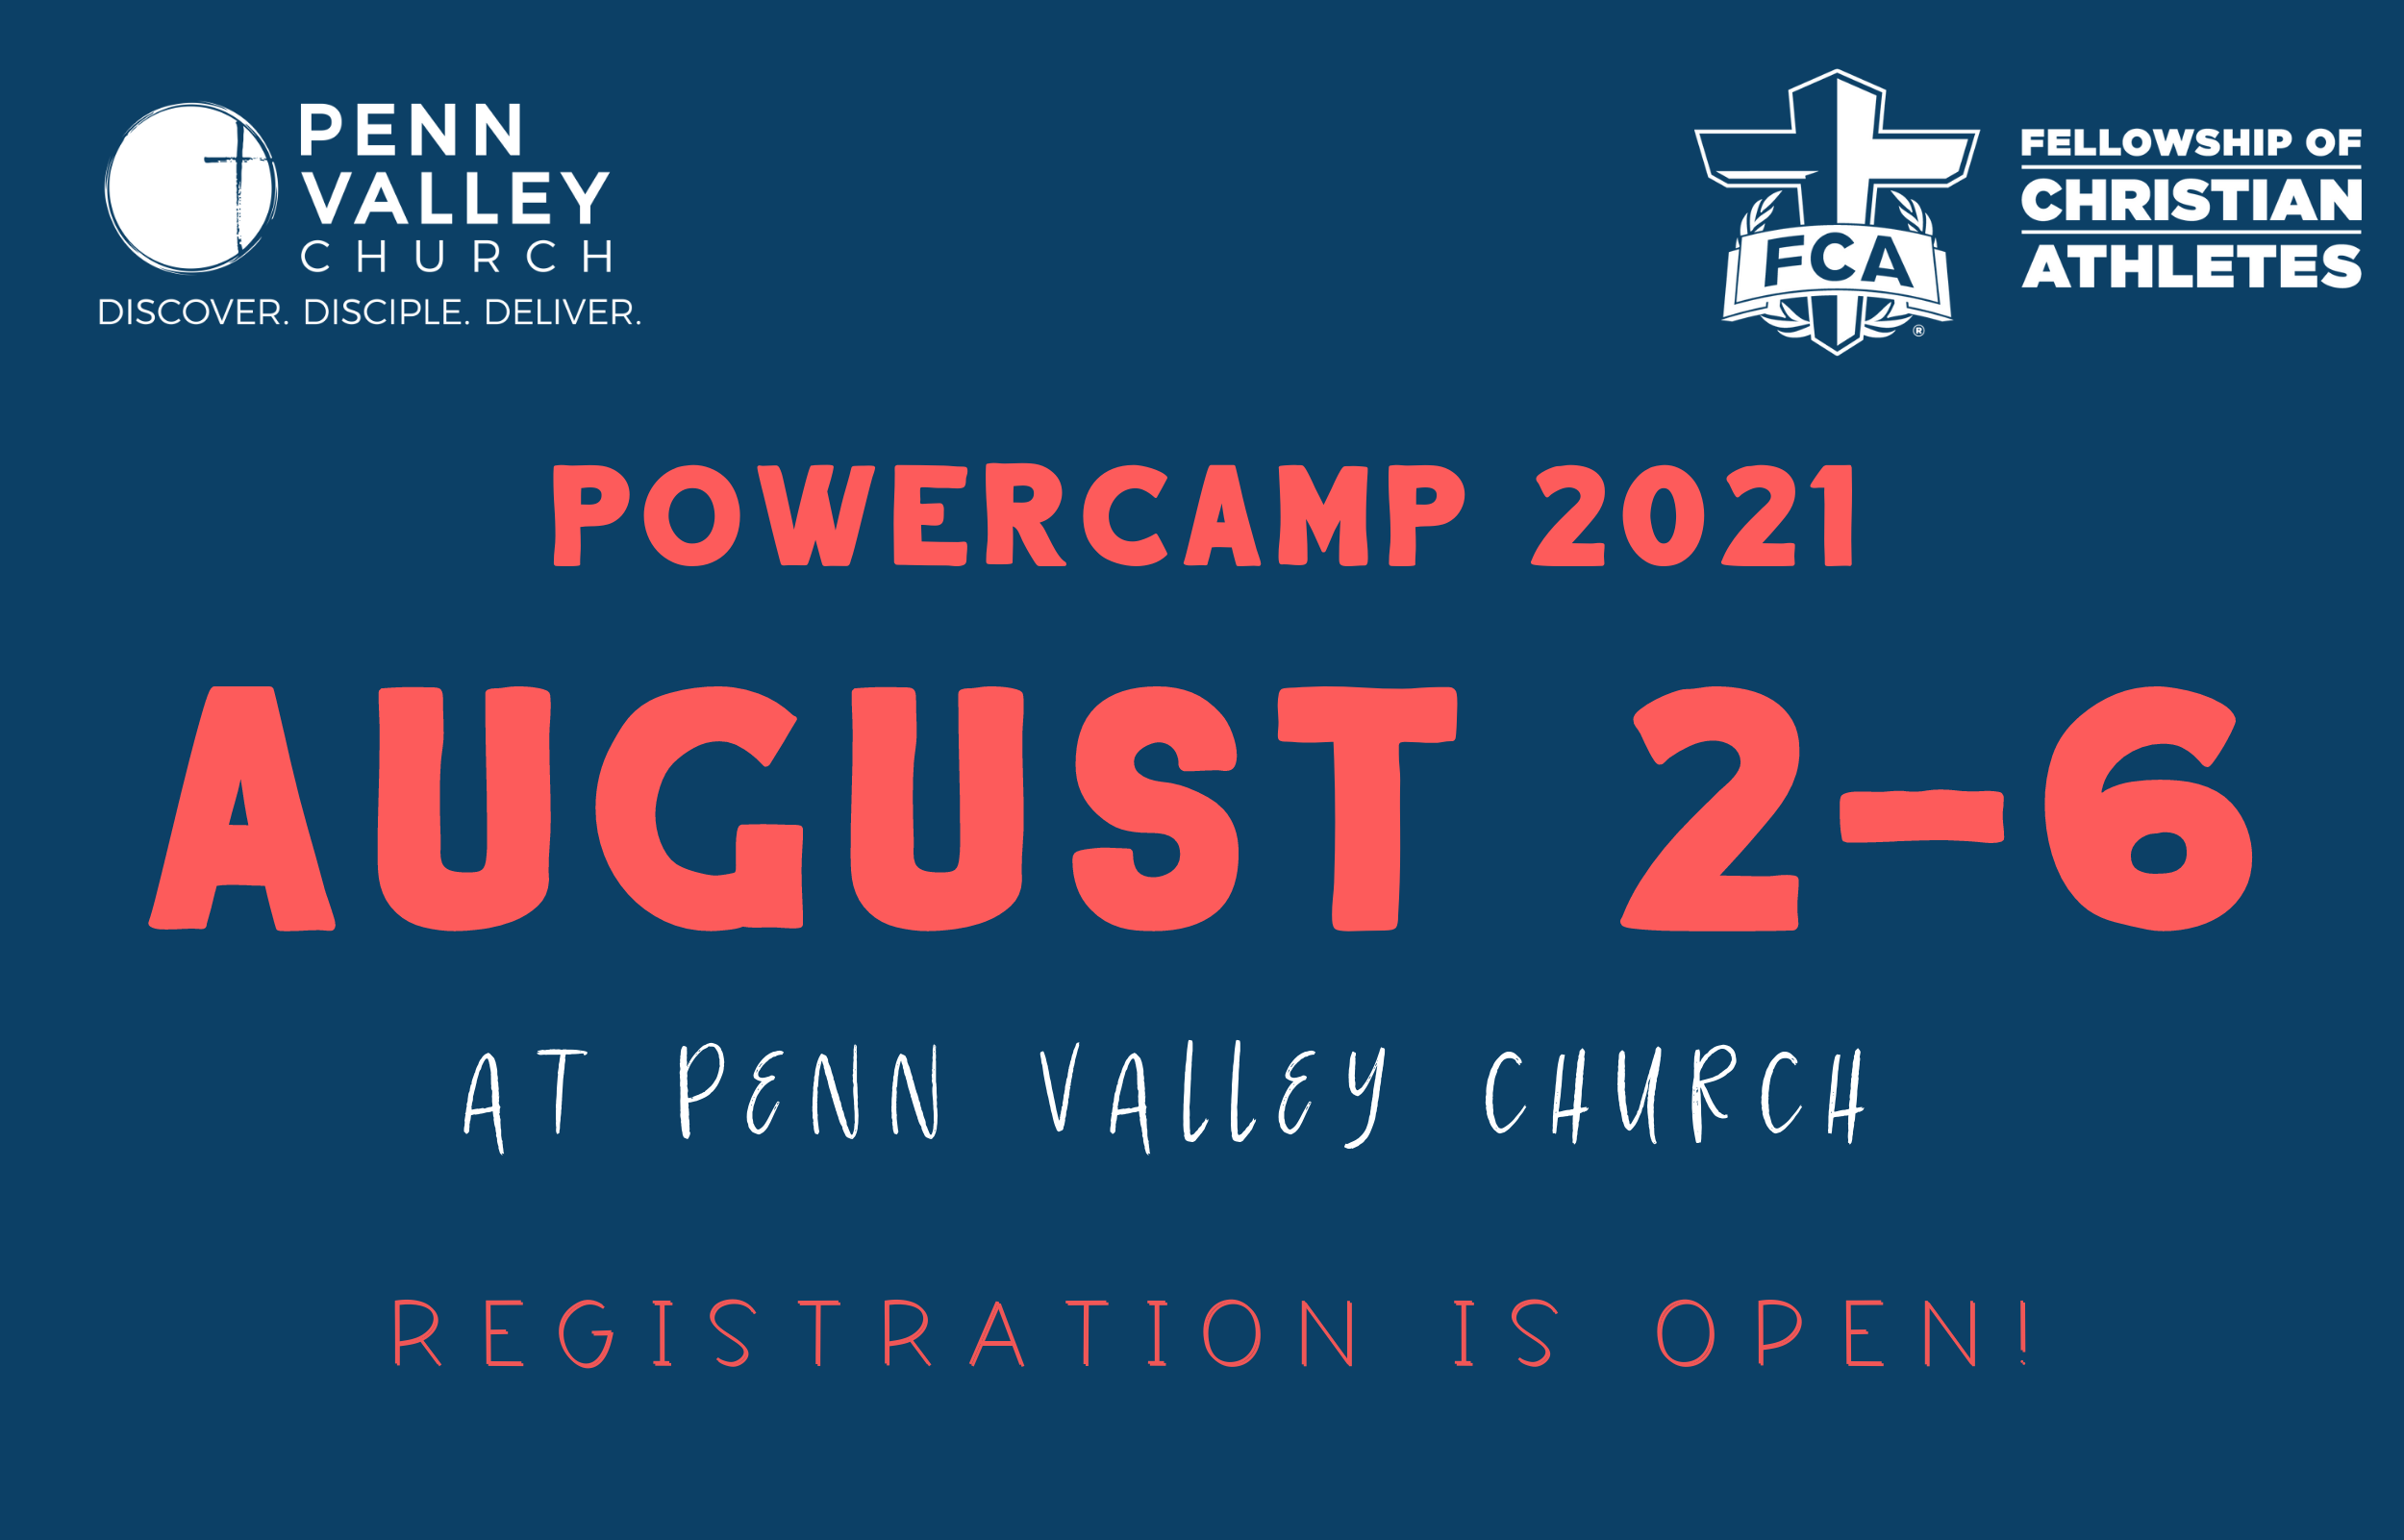 Power Camp 2021 - Now Open